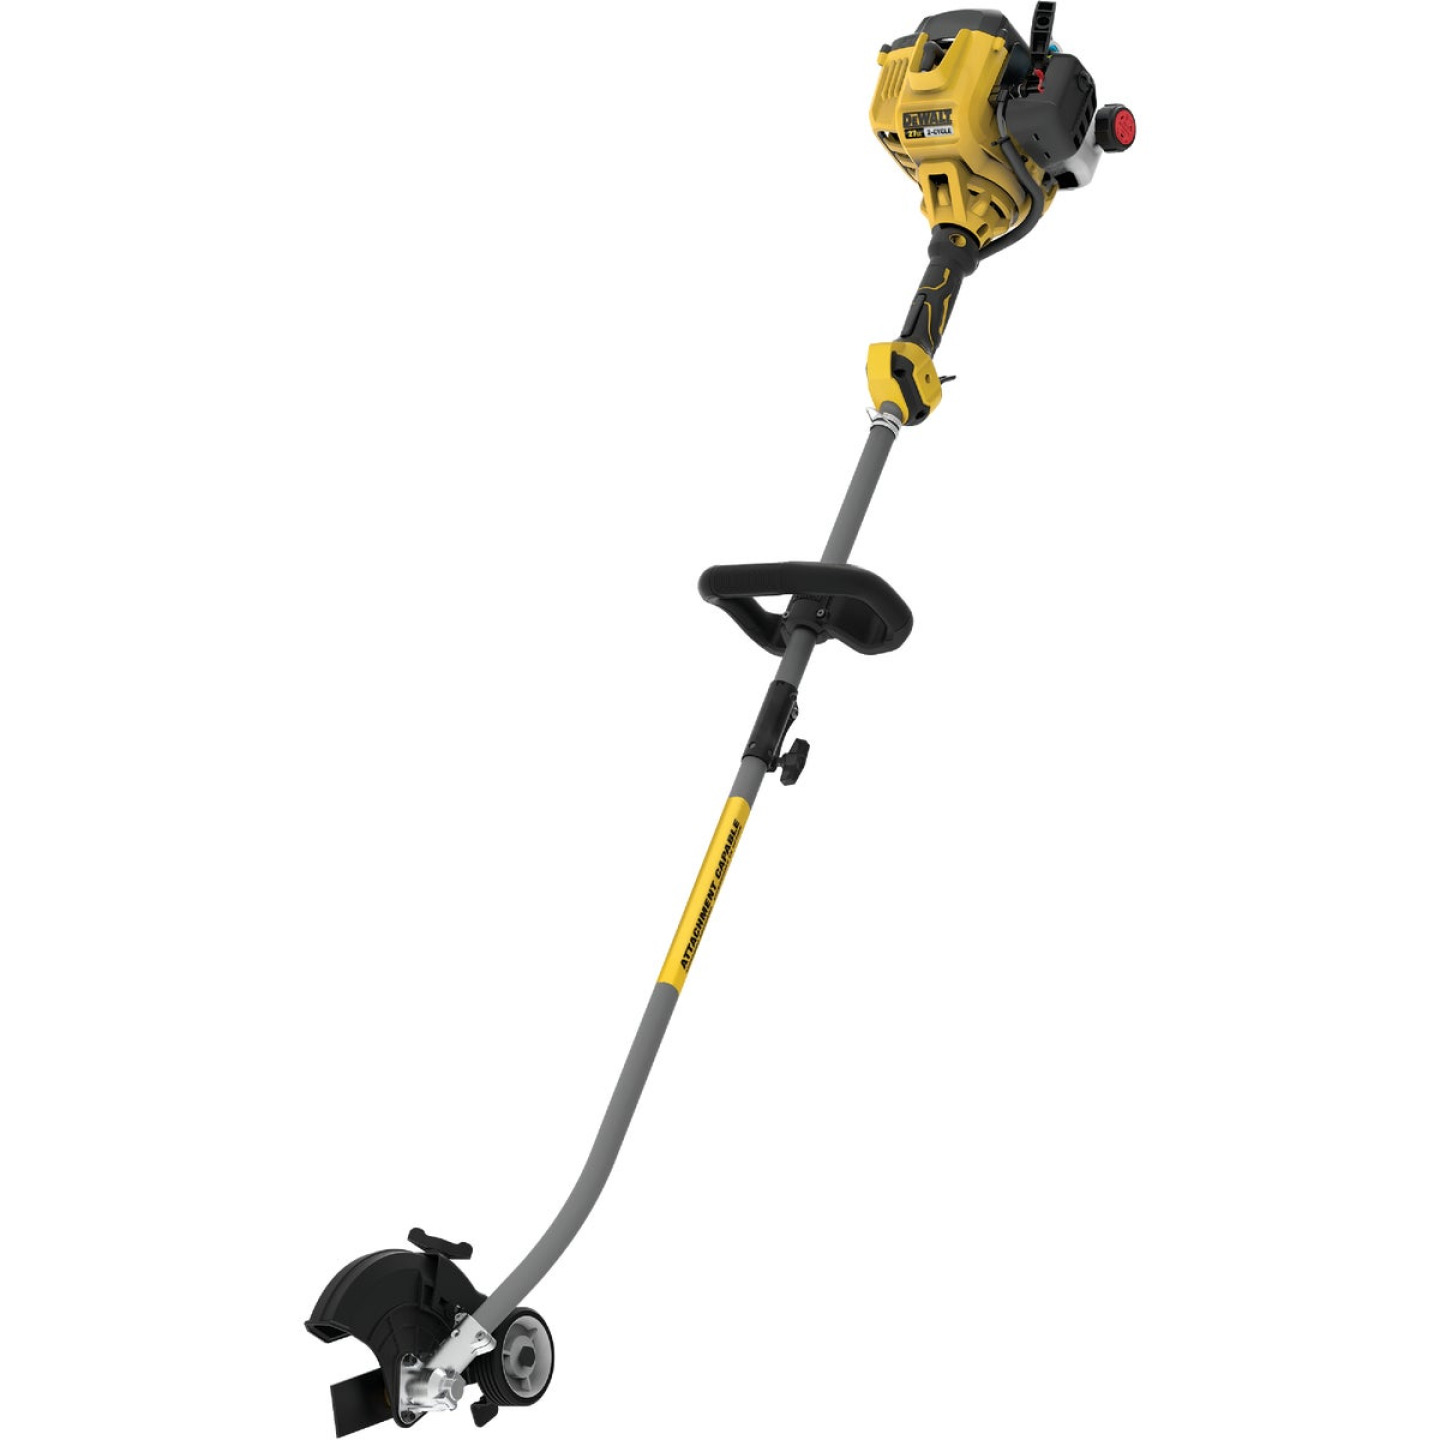 DeWalt Trimmer Plus 9 In. 27cc 2-Cycle Straight Shaft Gas Edger Image 1